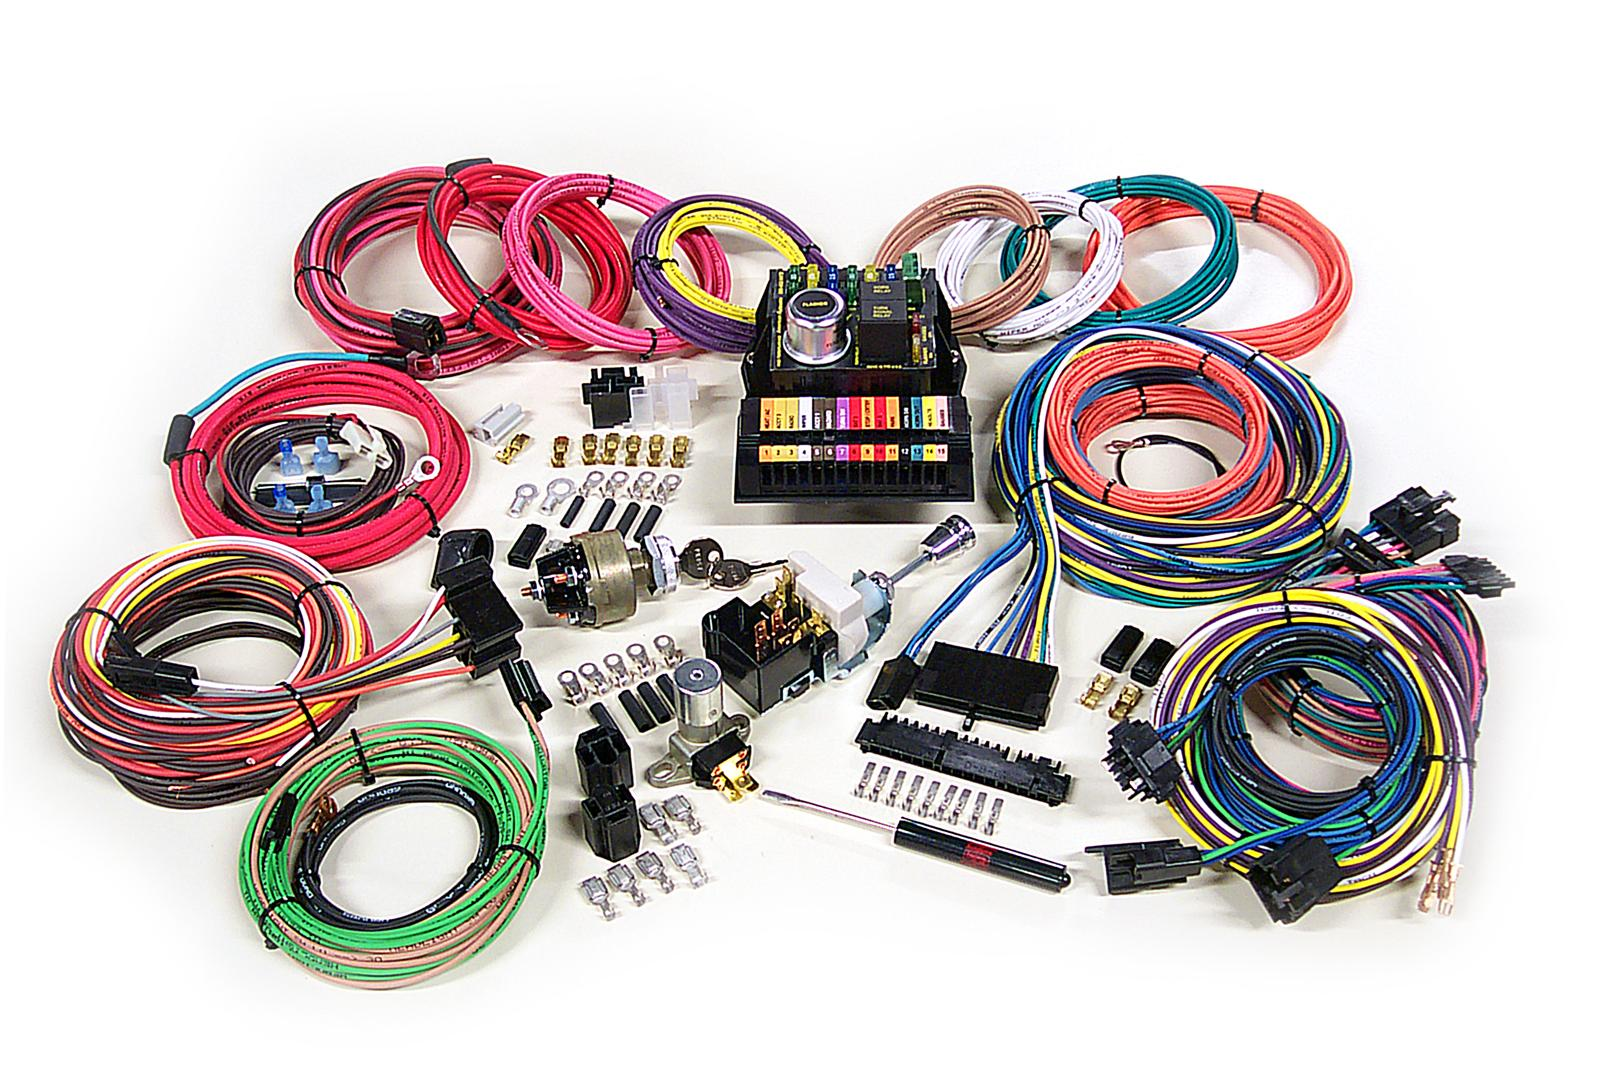 hight resolution of american autowire highway 15 wiring harness kits 500703 free shipping on orders over 49 at